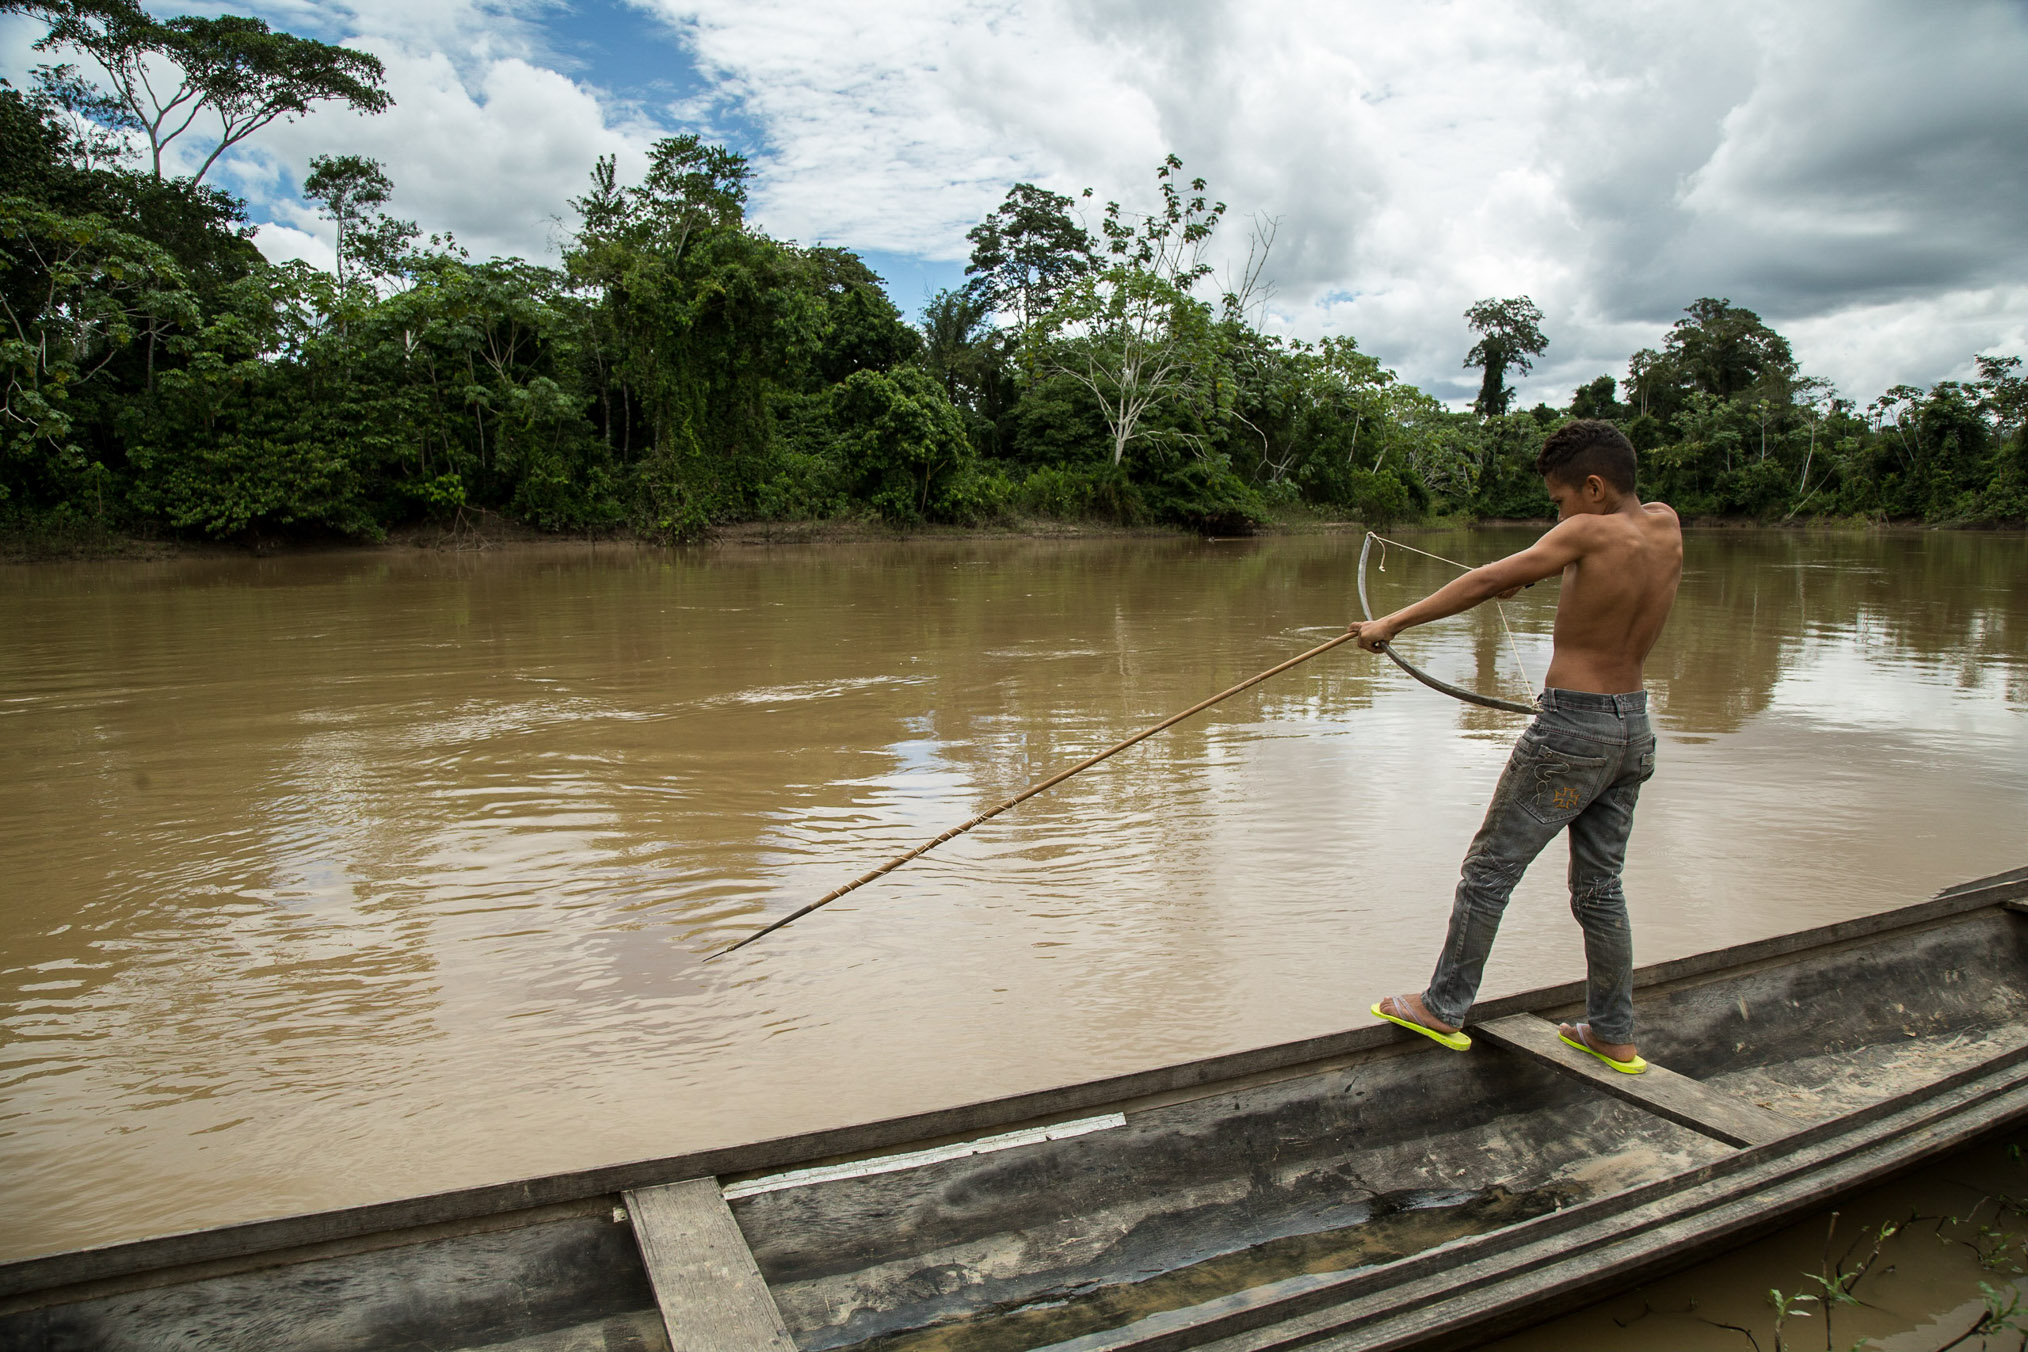 A young boy scans the water in search of his next target. A bow and long arrow is the traditional weapon riberinhos use to catch the monster pirarucu (Arapaima gigas), a fish native to Amazon rivers. Local children learn to fish, hunt and navigate flooded forests in dugout canoes almost as soon as they can walk.